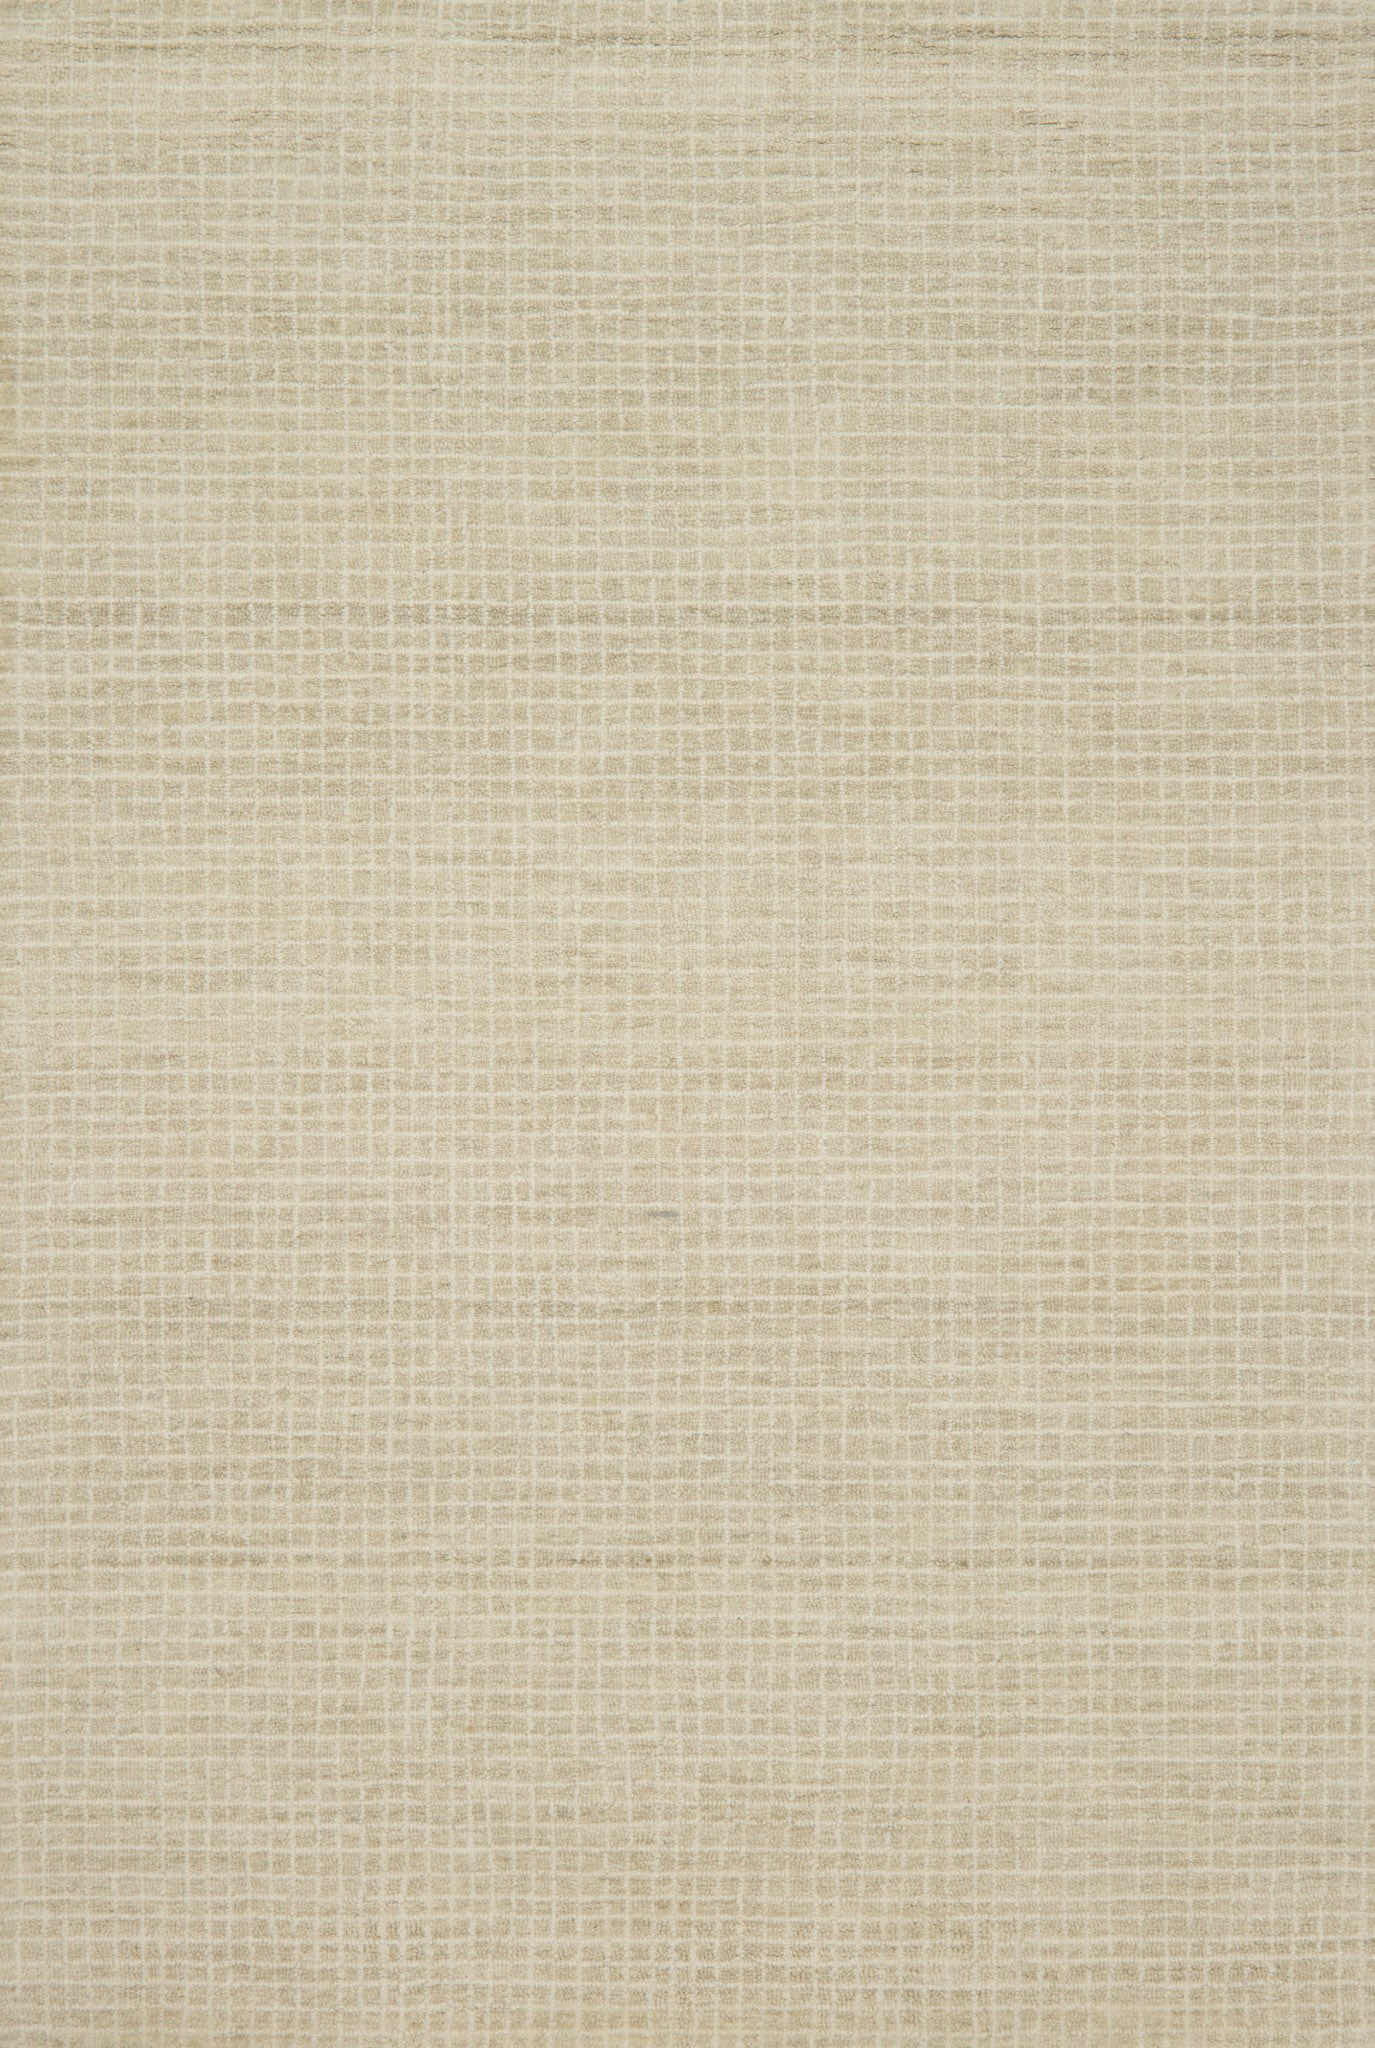 Loloi Giana Transitional Rugs Gh-01